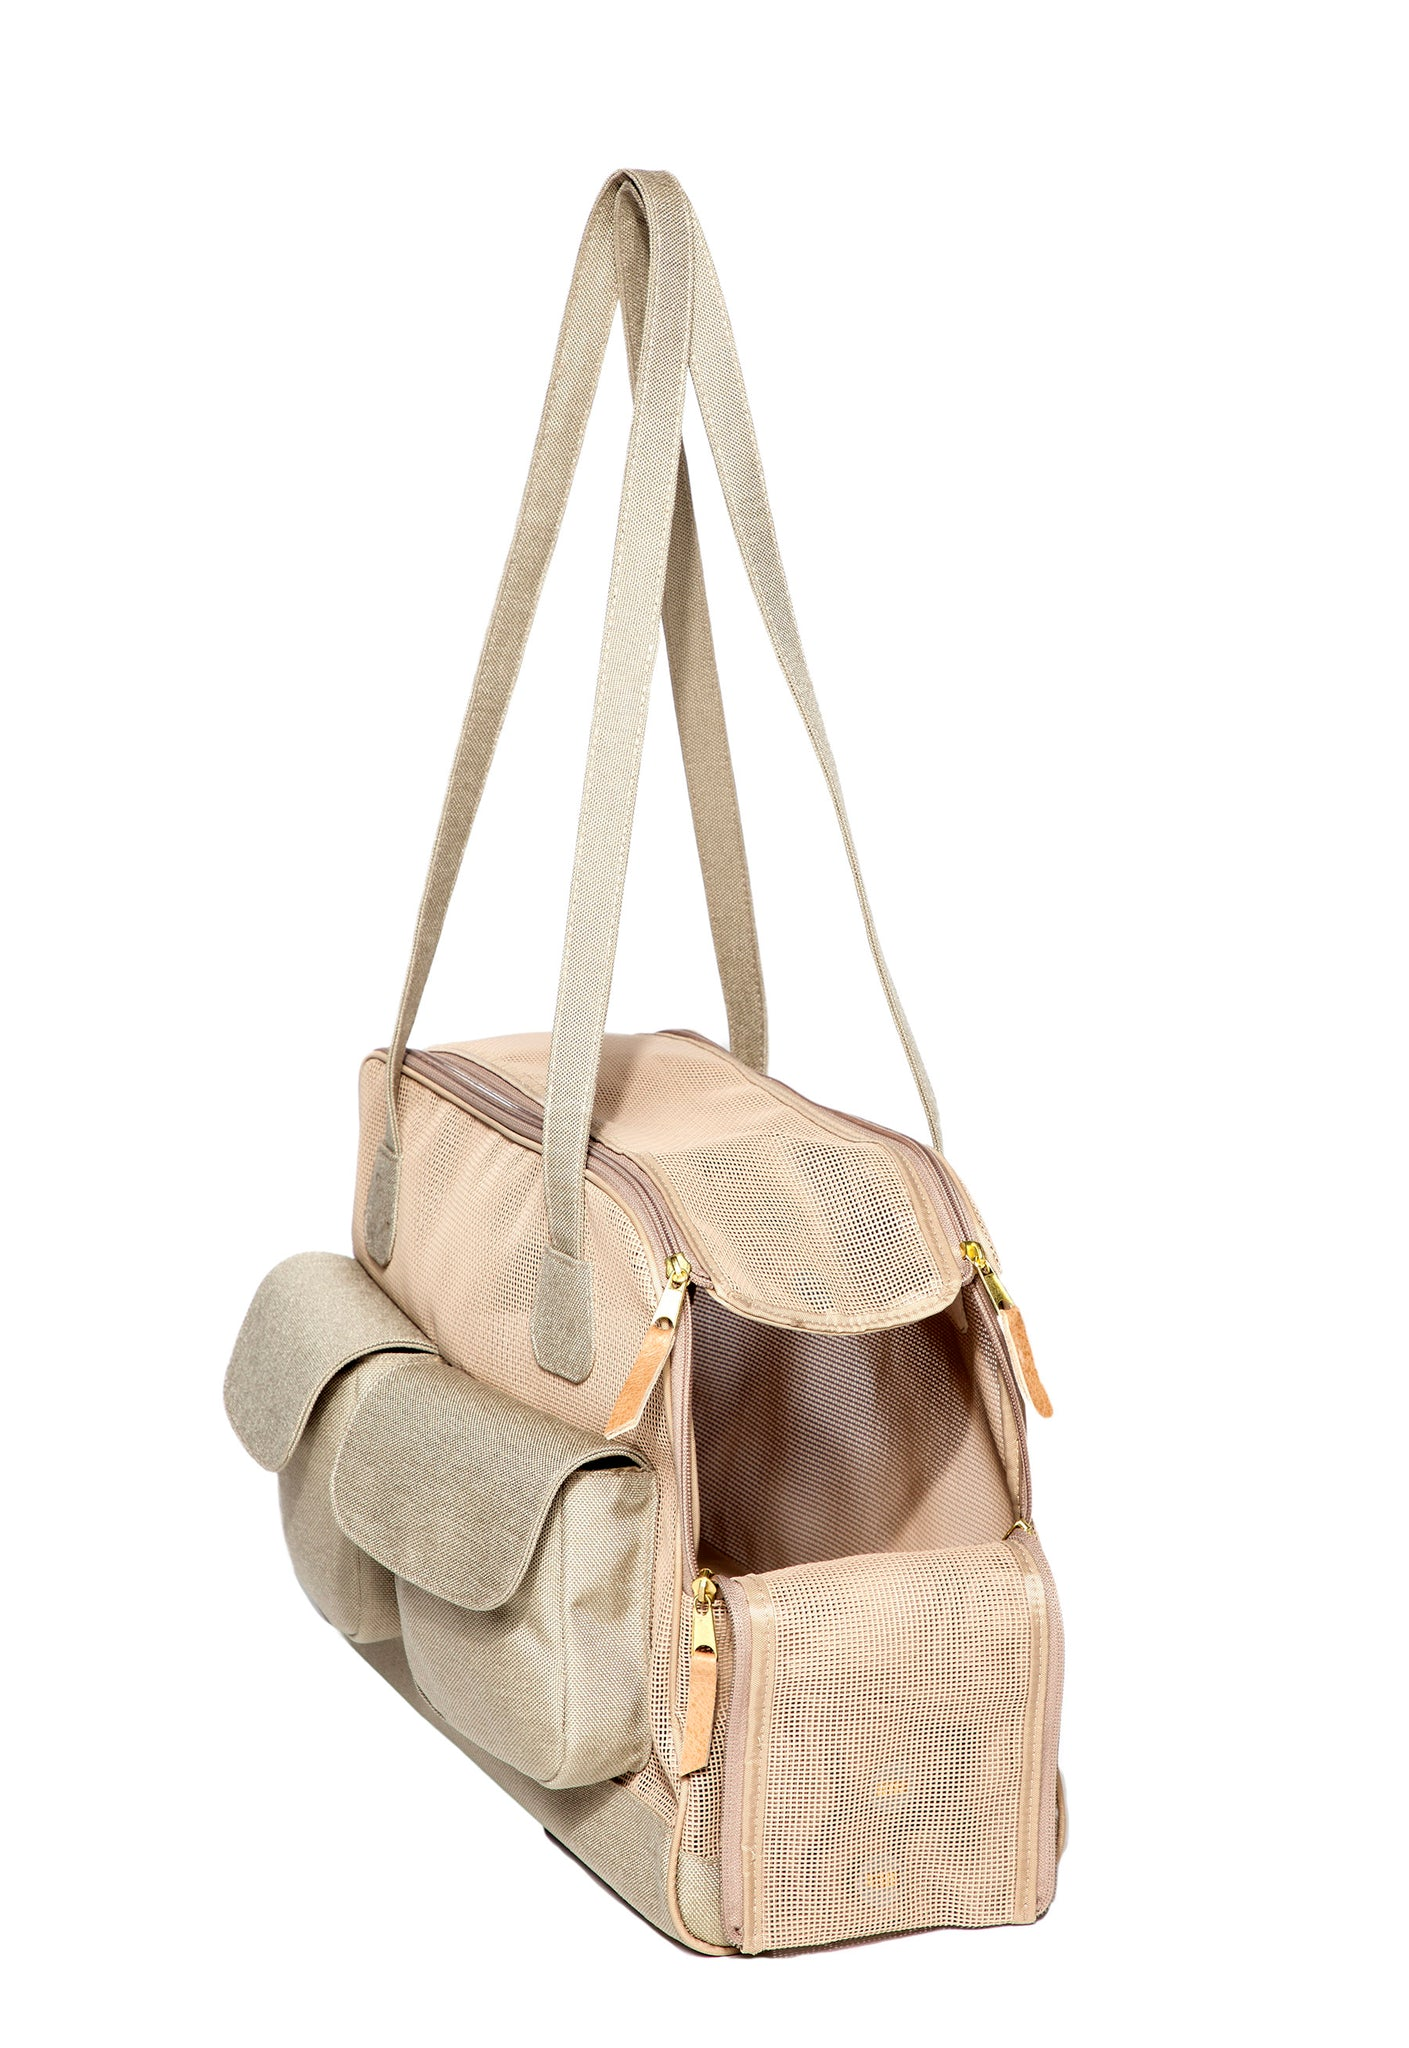 Dog Carrier - All Mesh Spring/Summer - Beige w/Black Canvas - w/Beige Canvas